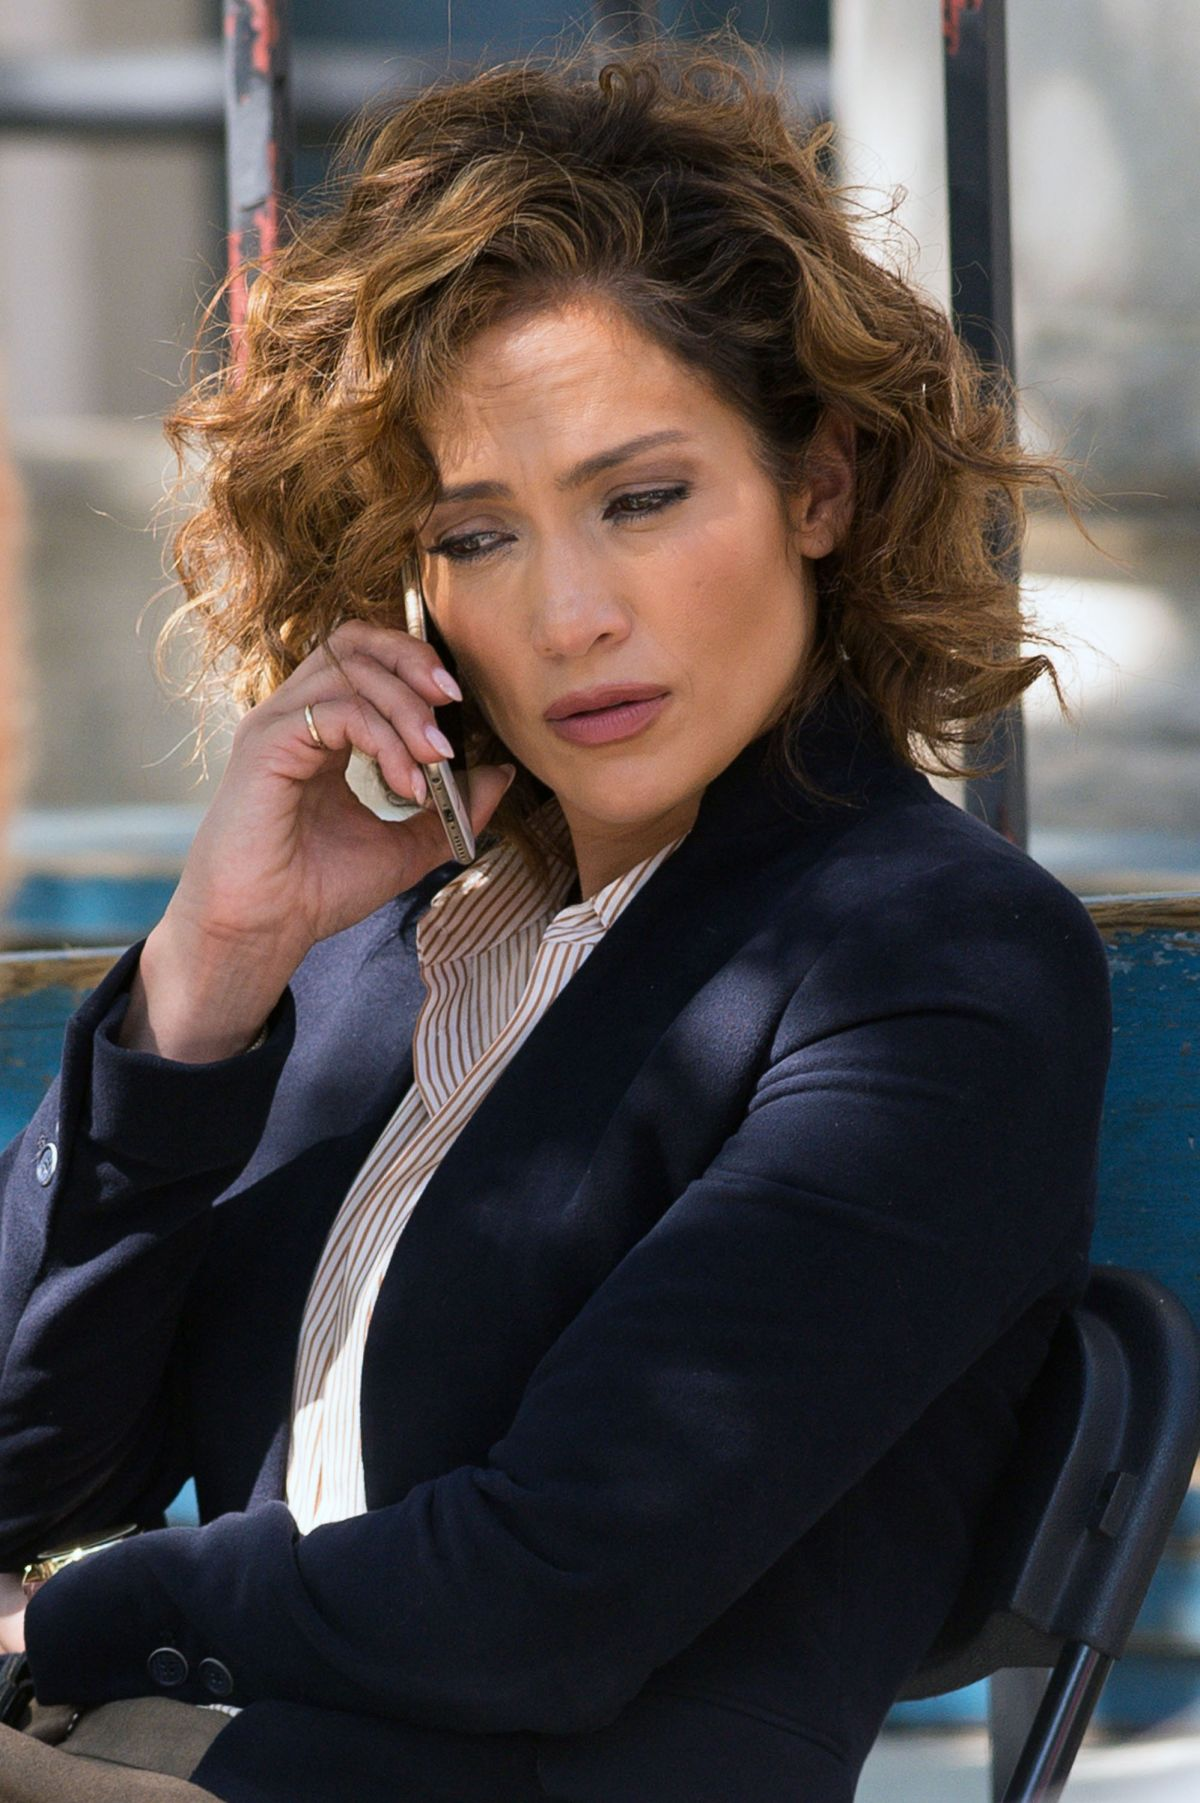 JENNIFER LOPEZ on the Set of Shades of Blue in New York 07/31/2015